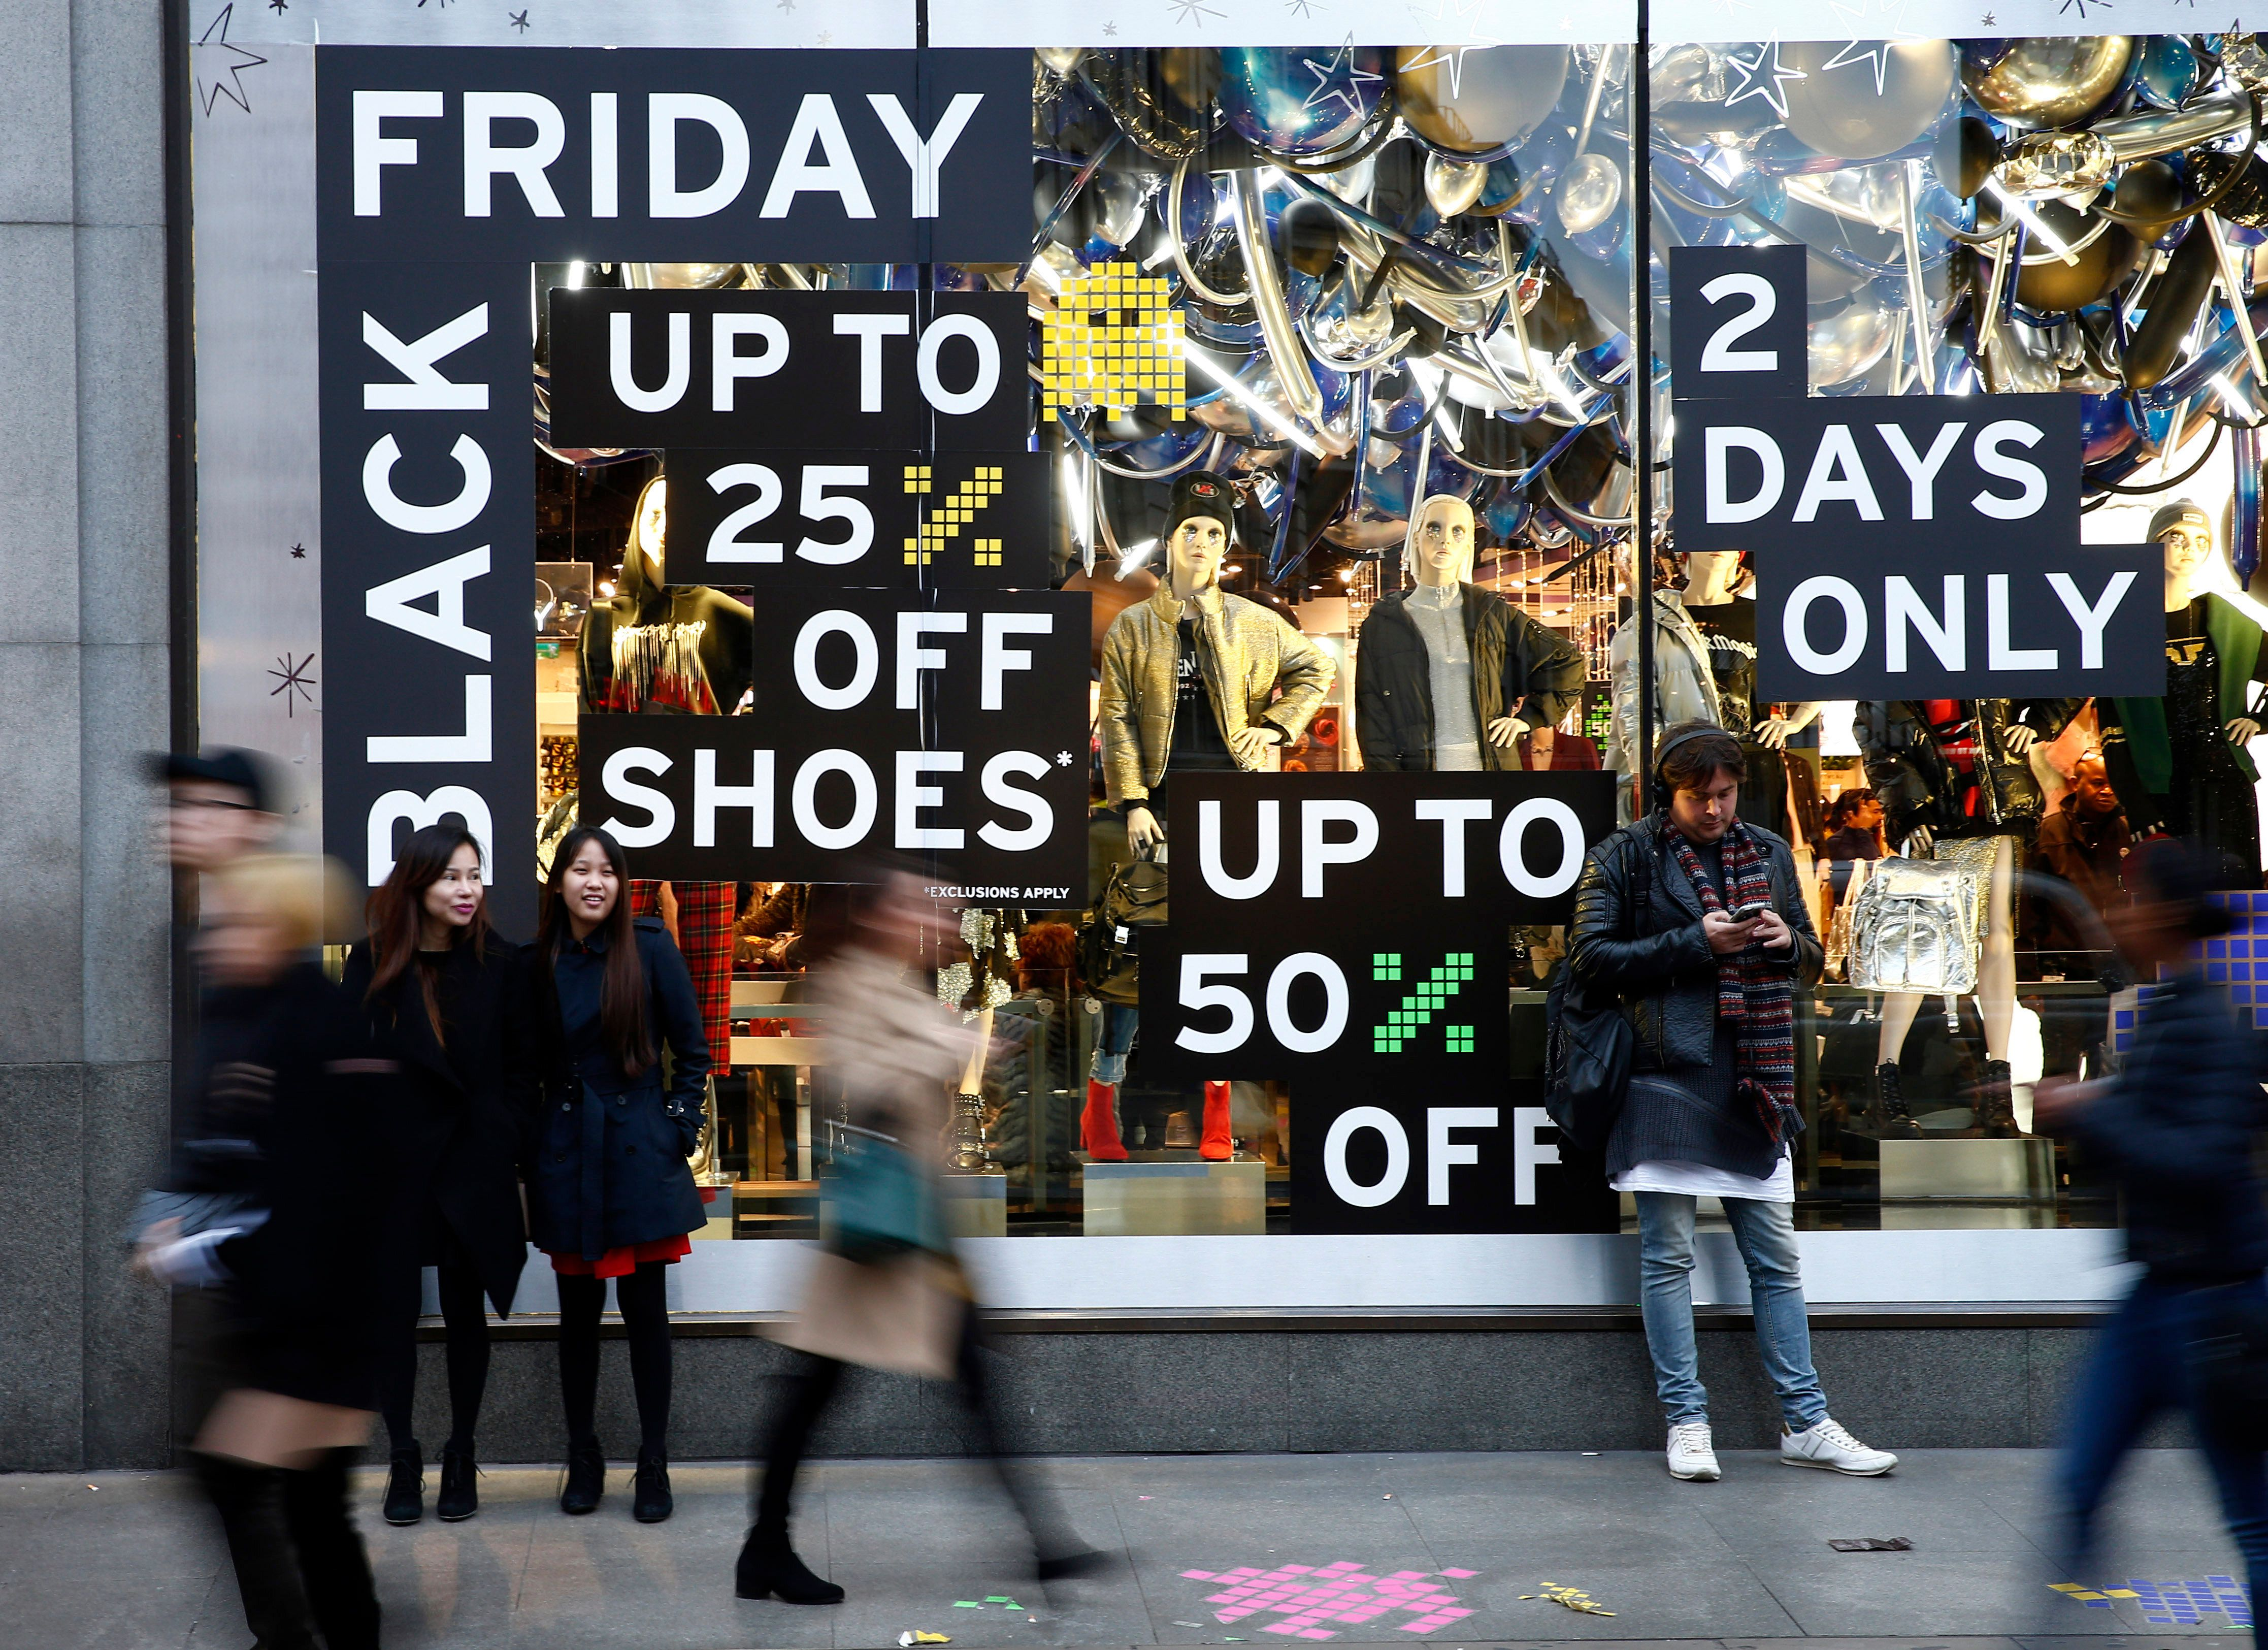 That Black Friday Bargain You've Been Eyeing Up Might Not Be A Bargain At